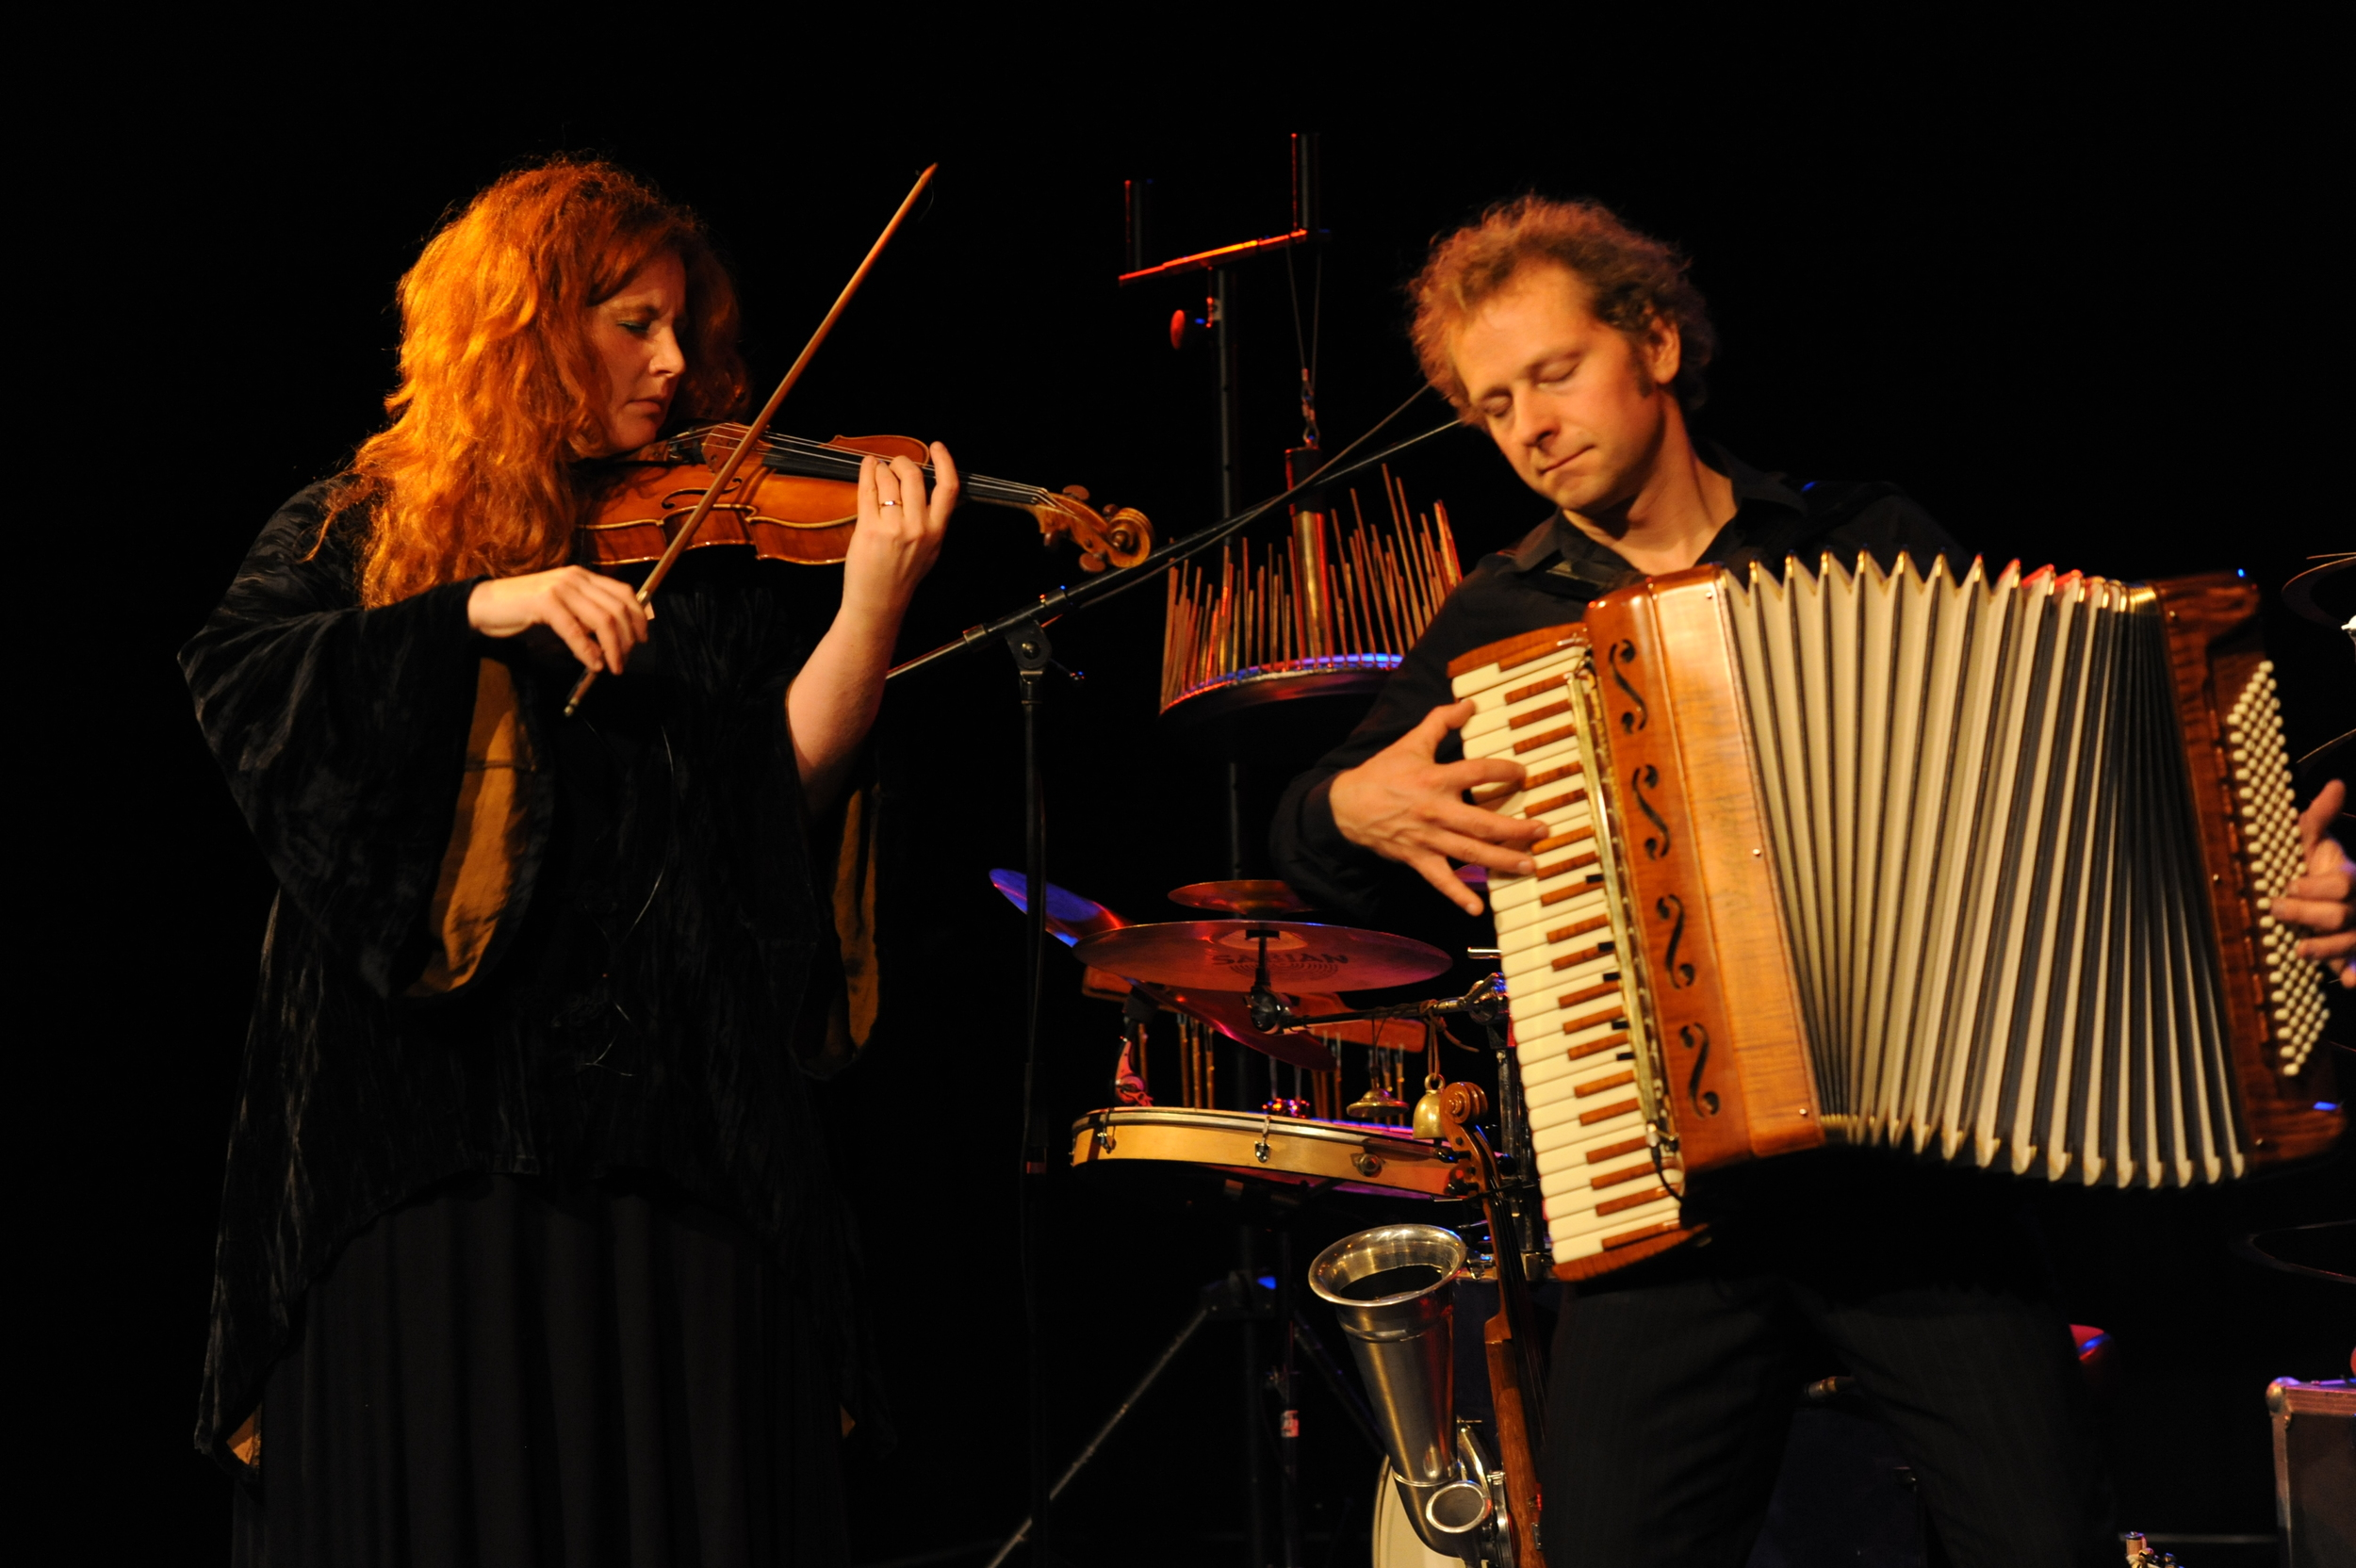 Martina Eisenreich & Andreas Hinterseher (live), Photography by Yakup Zeyrek